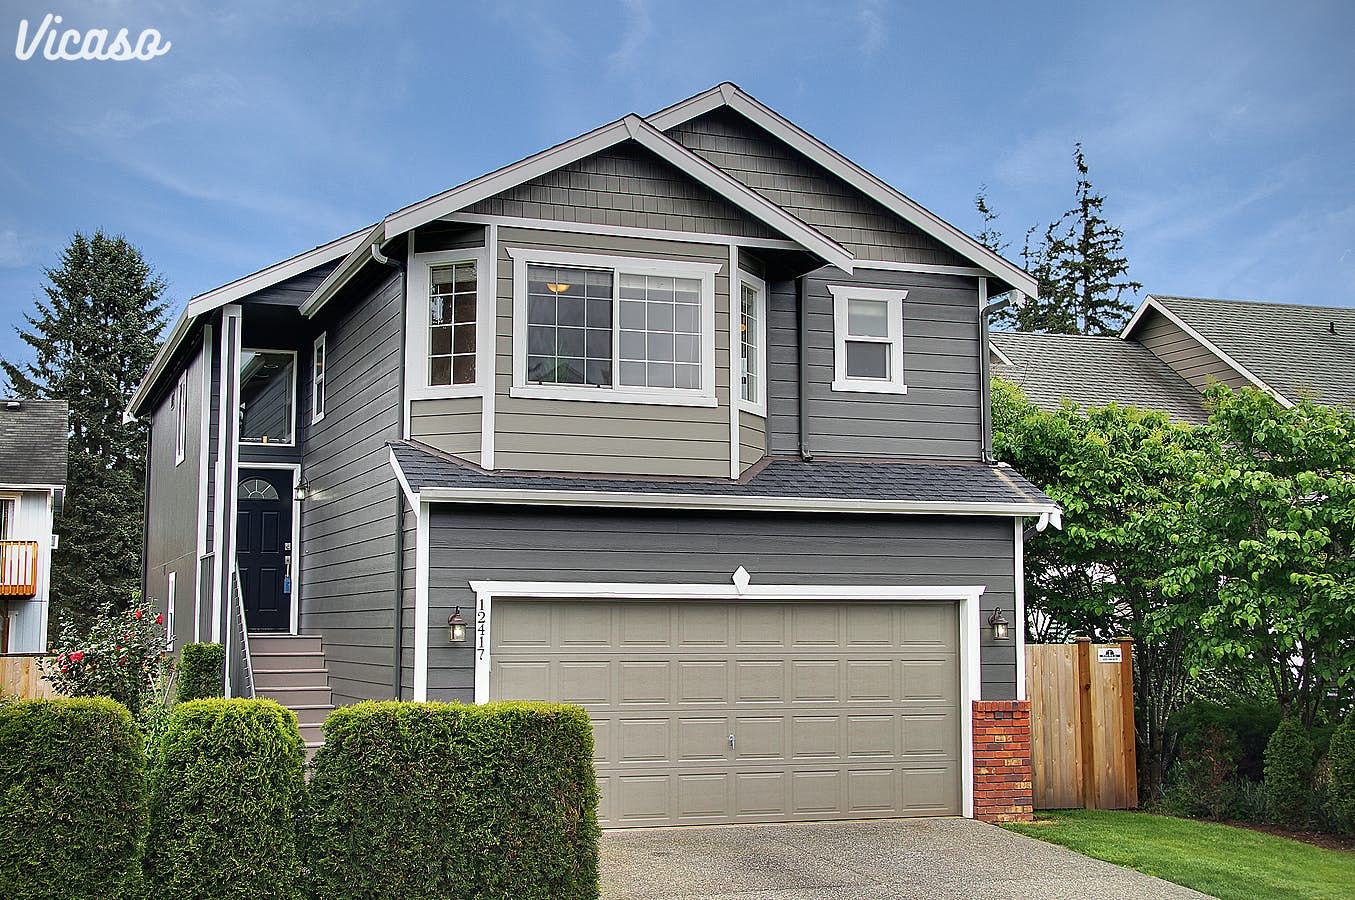 3 Bedrooms Home In Everett Wa